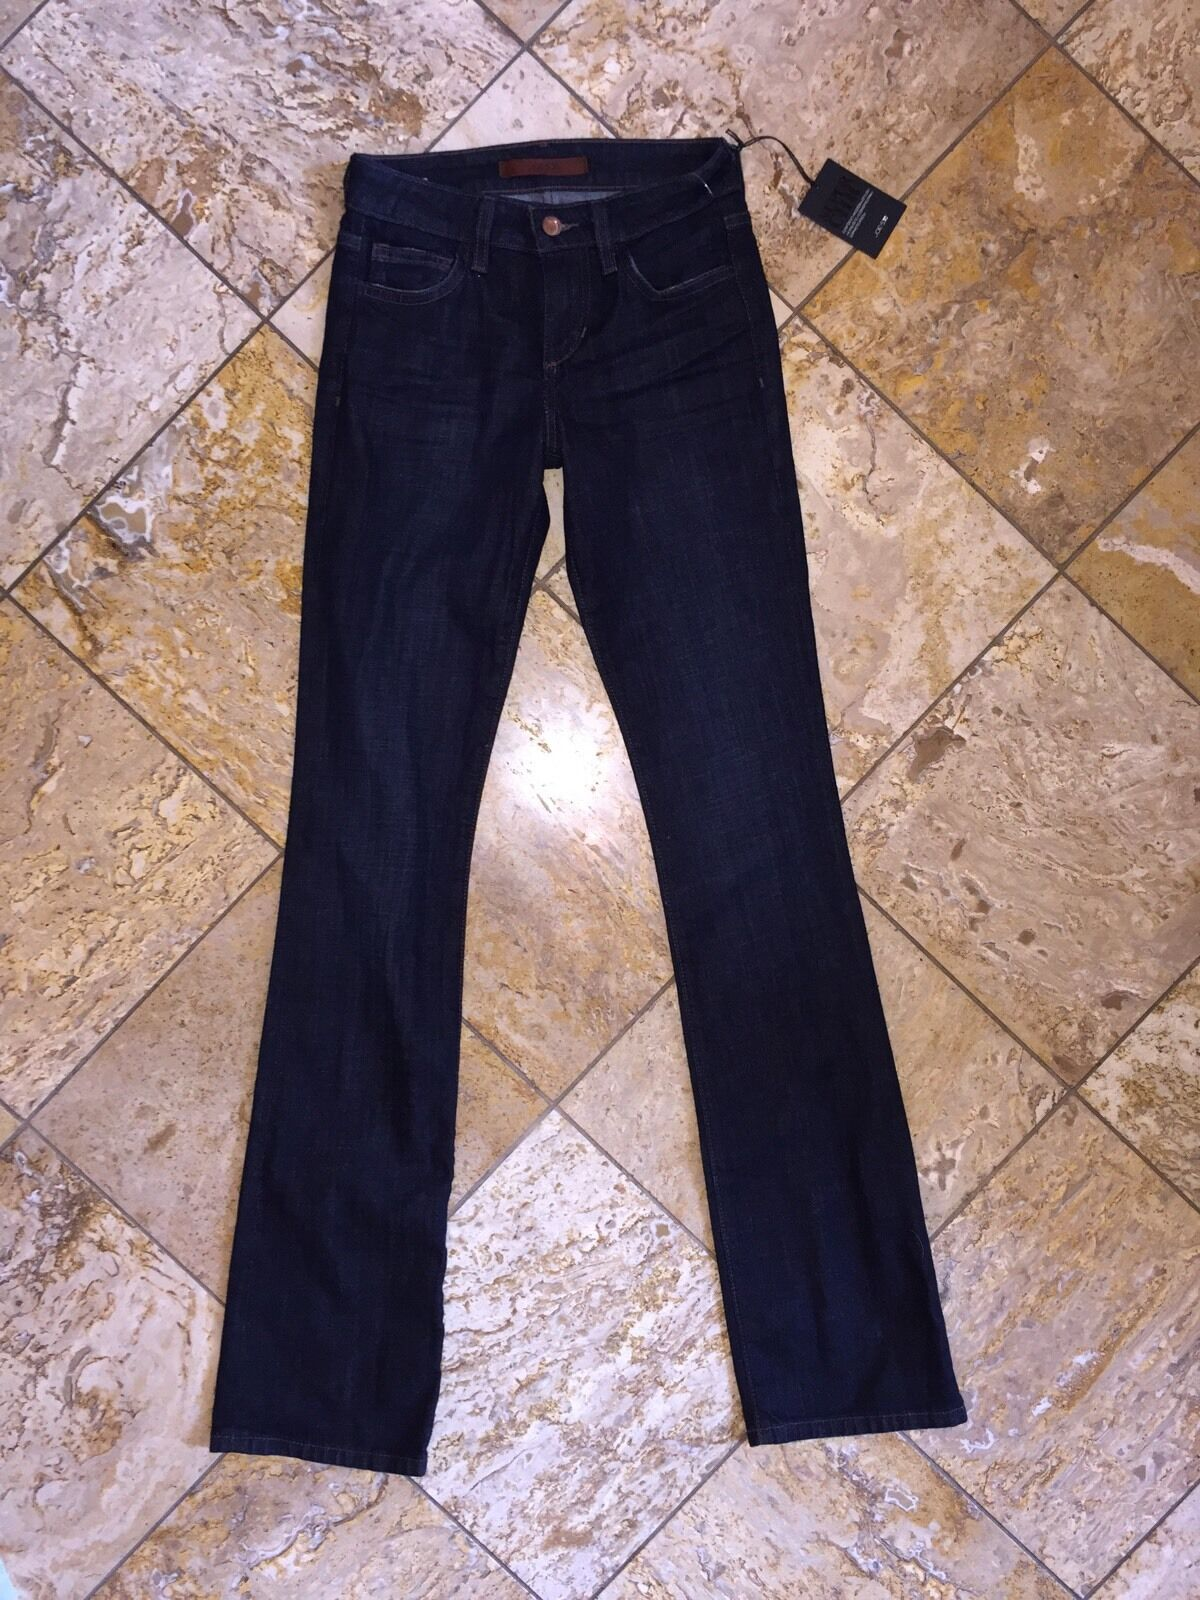 NWT Joe's Jeans Dark bluee Denim Skinny Leg Pants Curvy Bootcut Honey Women's 24